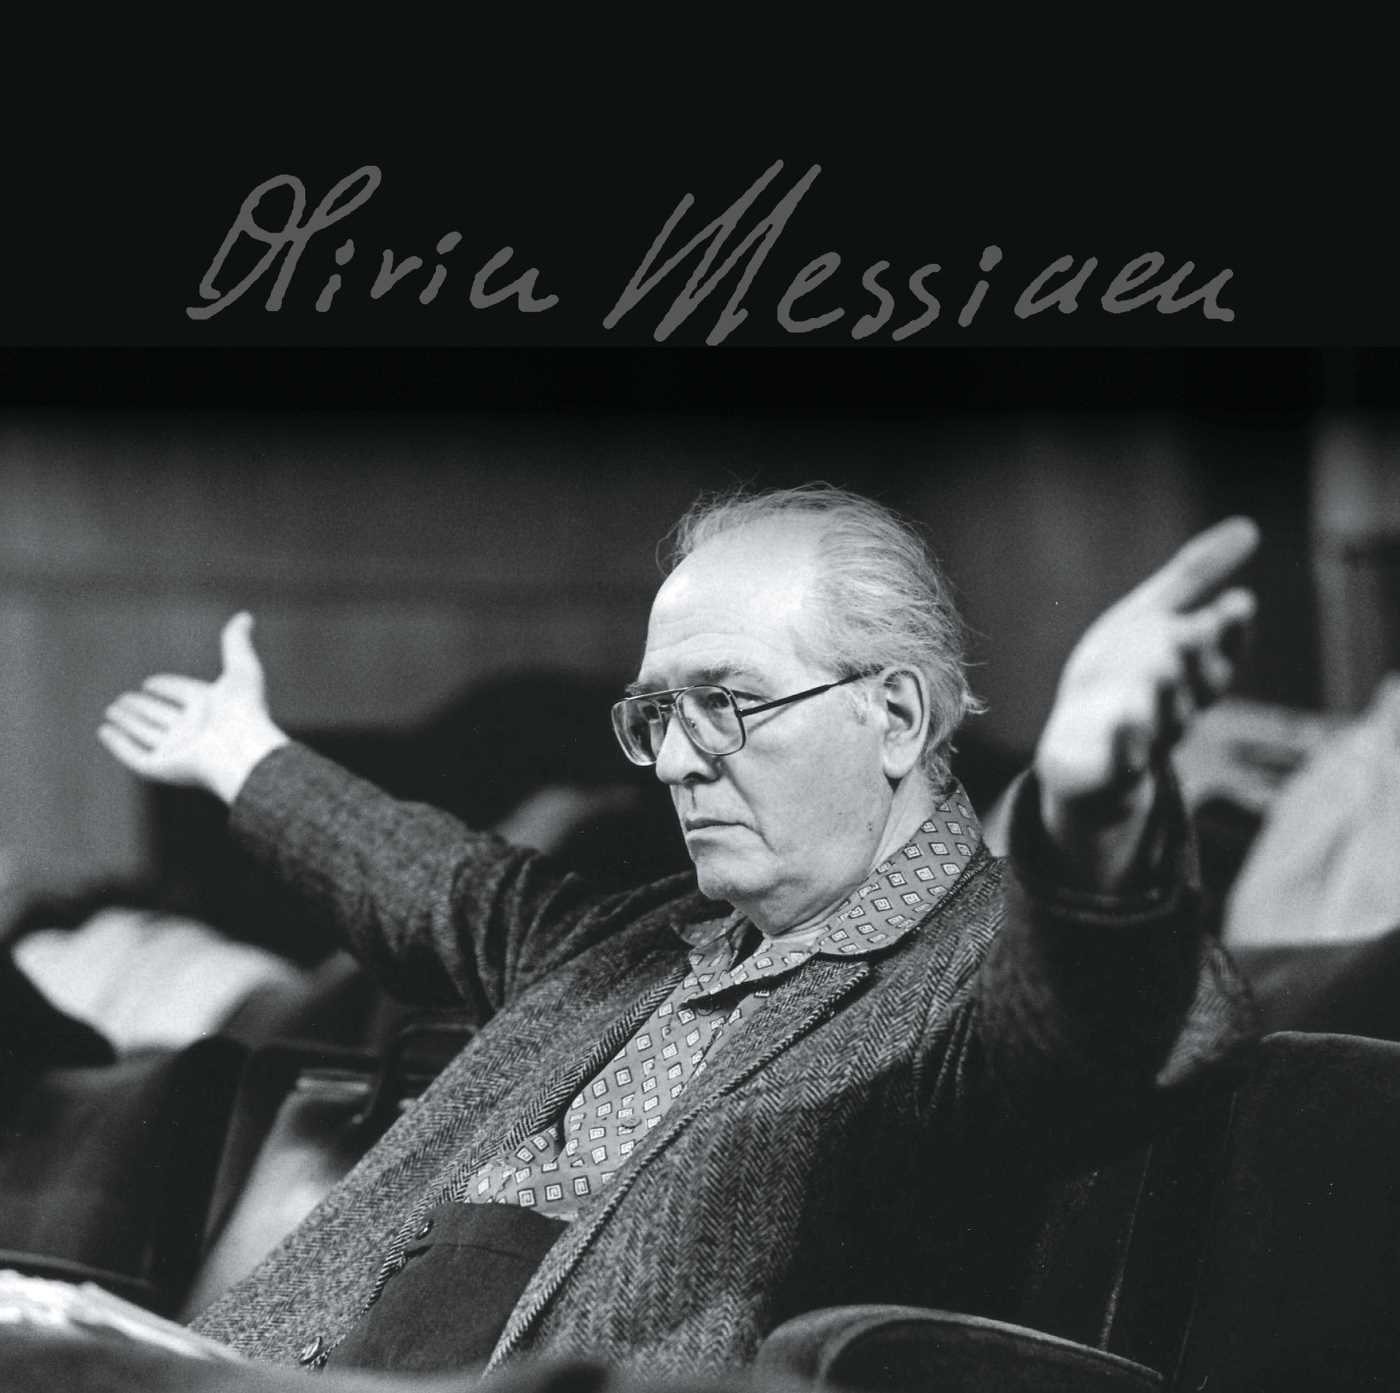 Oliver Messiaen Complete Edition [32 CD Limited Edition] by Deutsche Grammophon